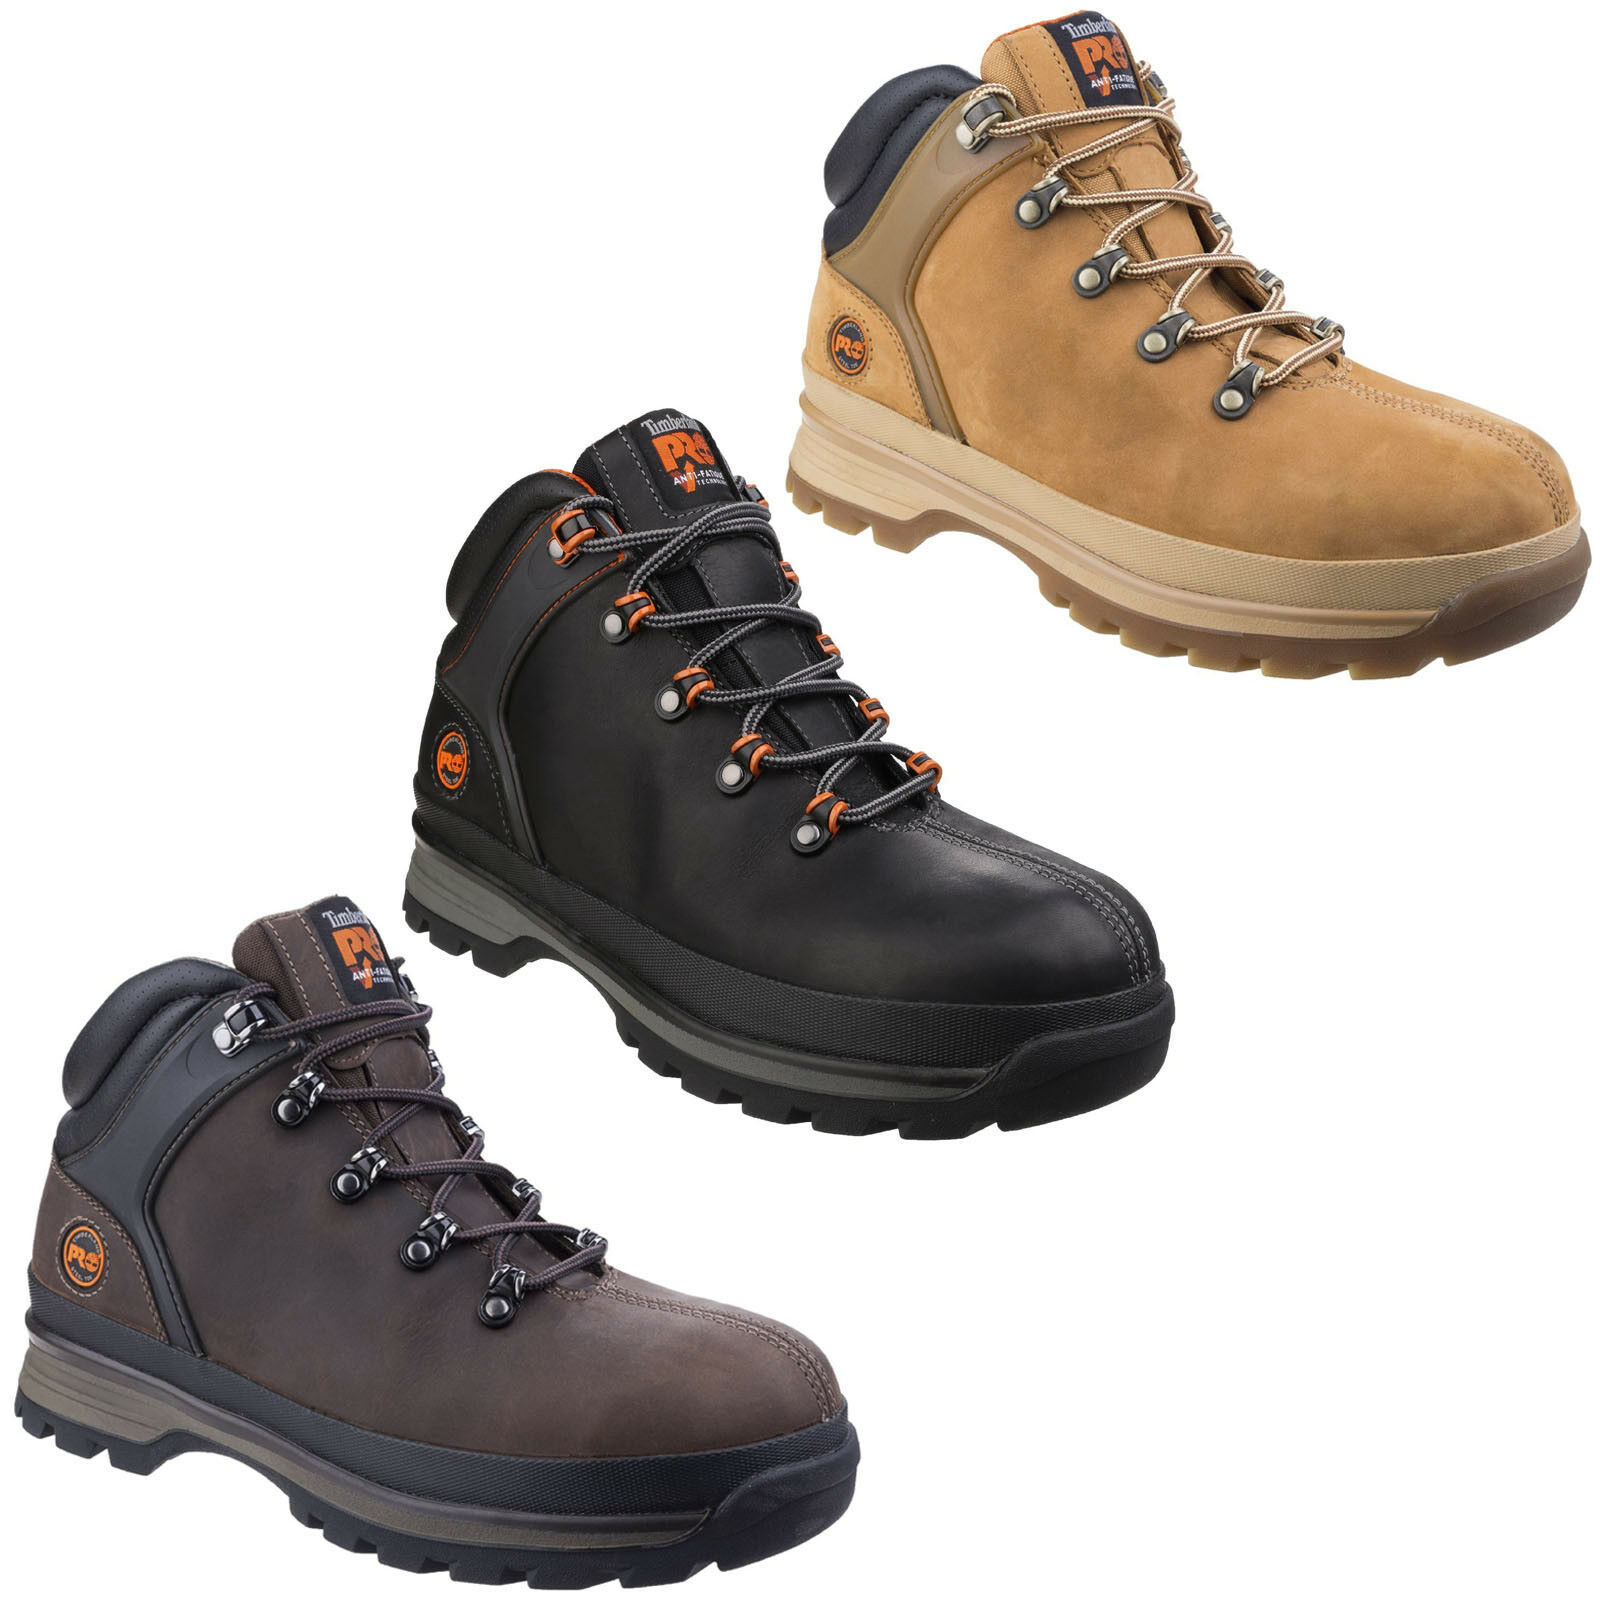 b9eb69604af Details about Timberland Pro Splitrock XT Safety Boots Mens Industrial  Steel Toe Cap Work Shoe